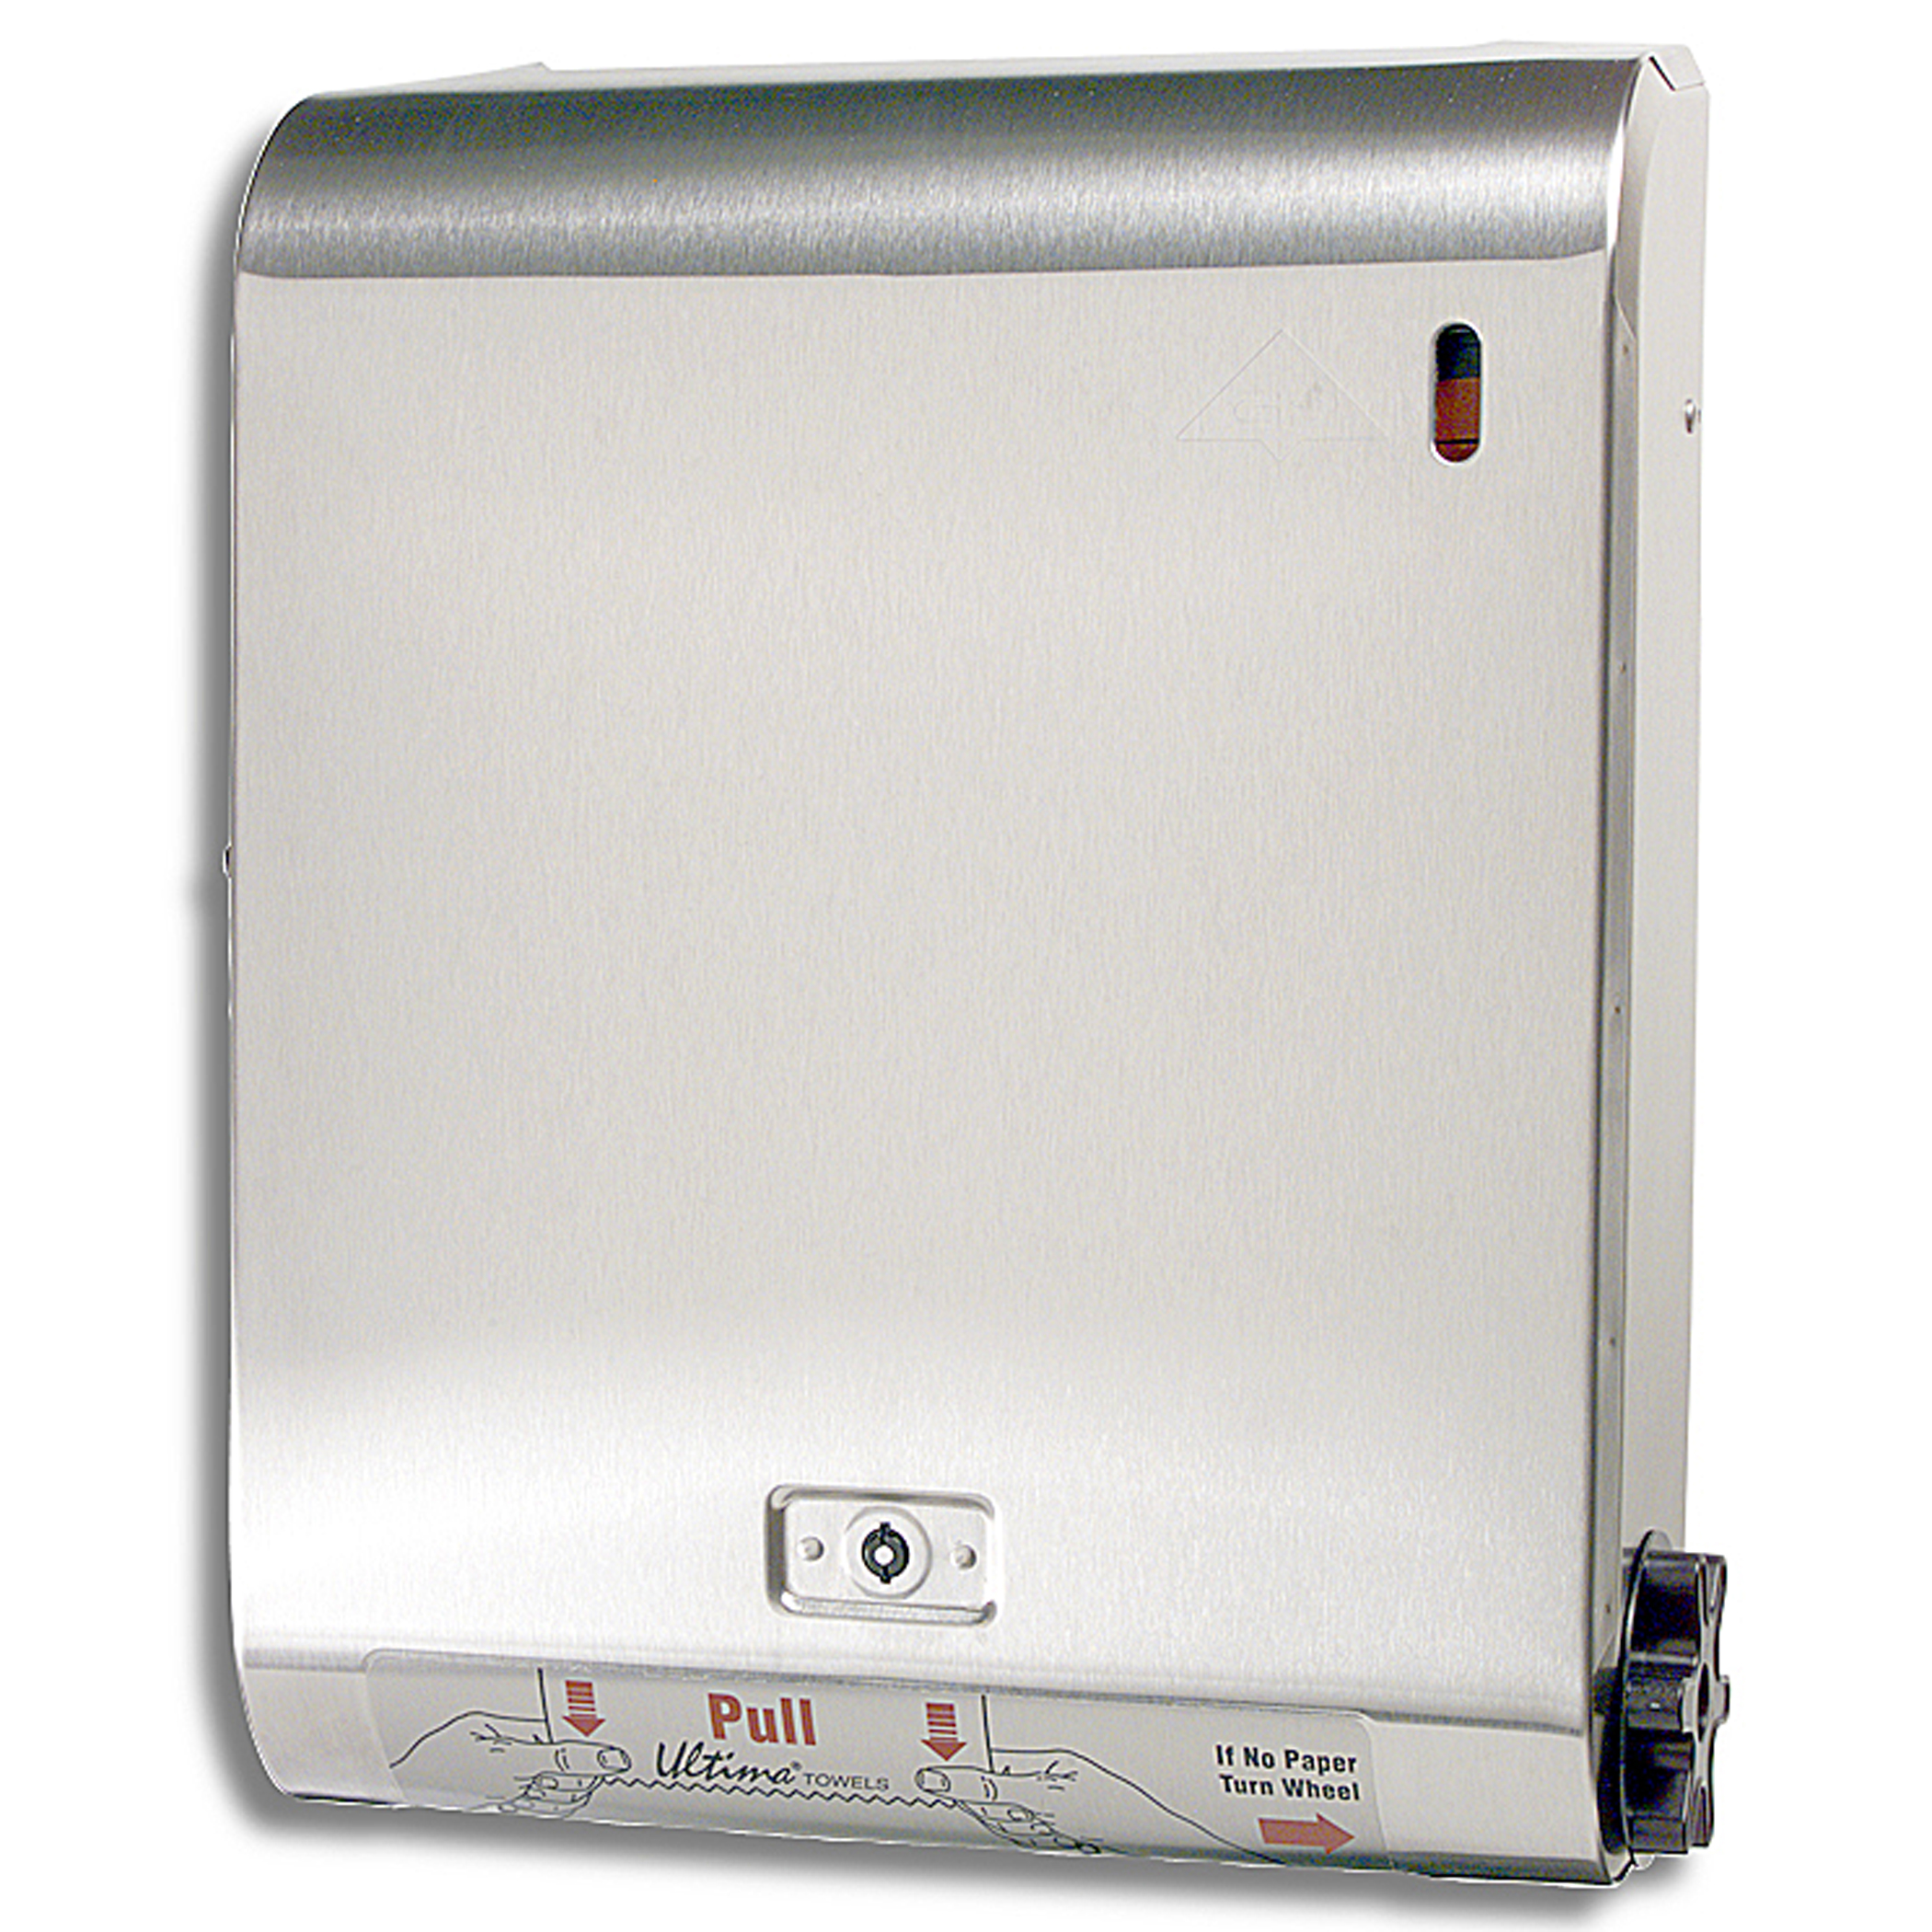 10036500049871 Better Alternative® Stainless Steel Recessed Roll Towel Dispenser BU-1S (P12)(Key Lock)